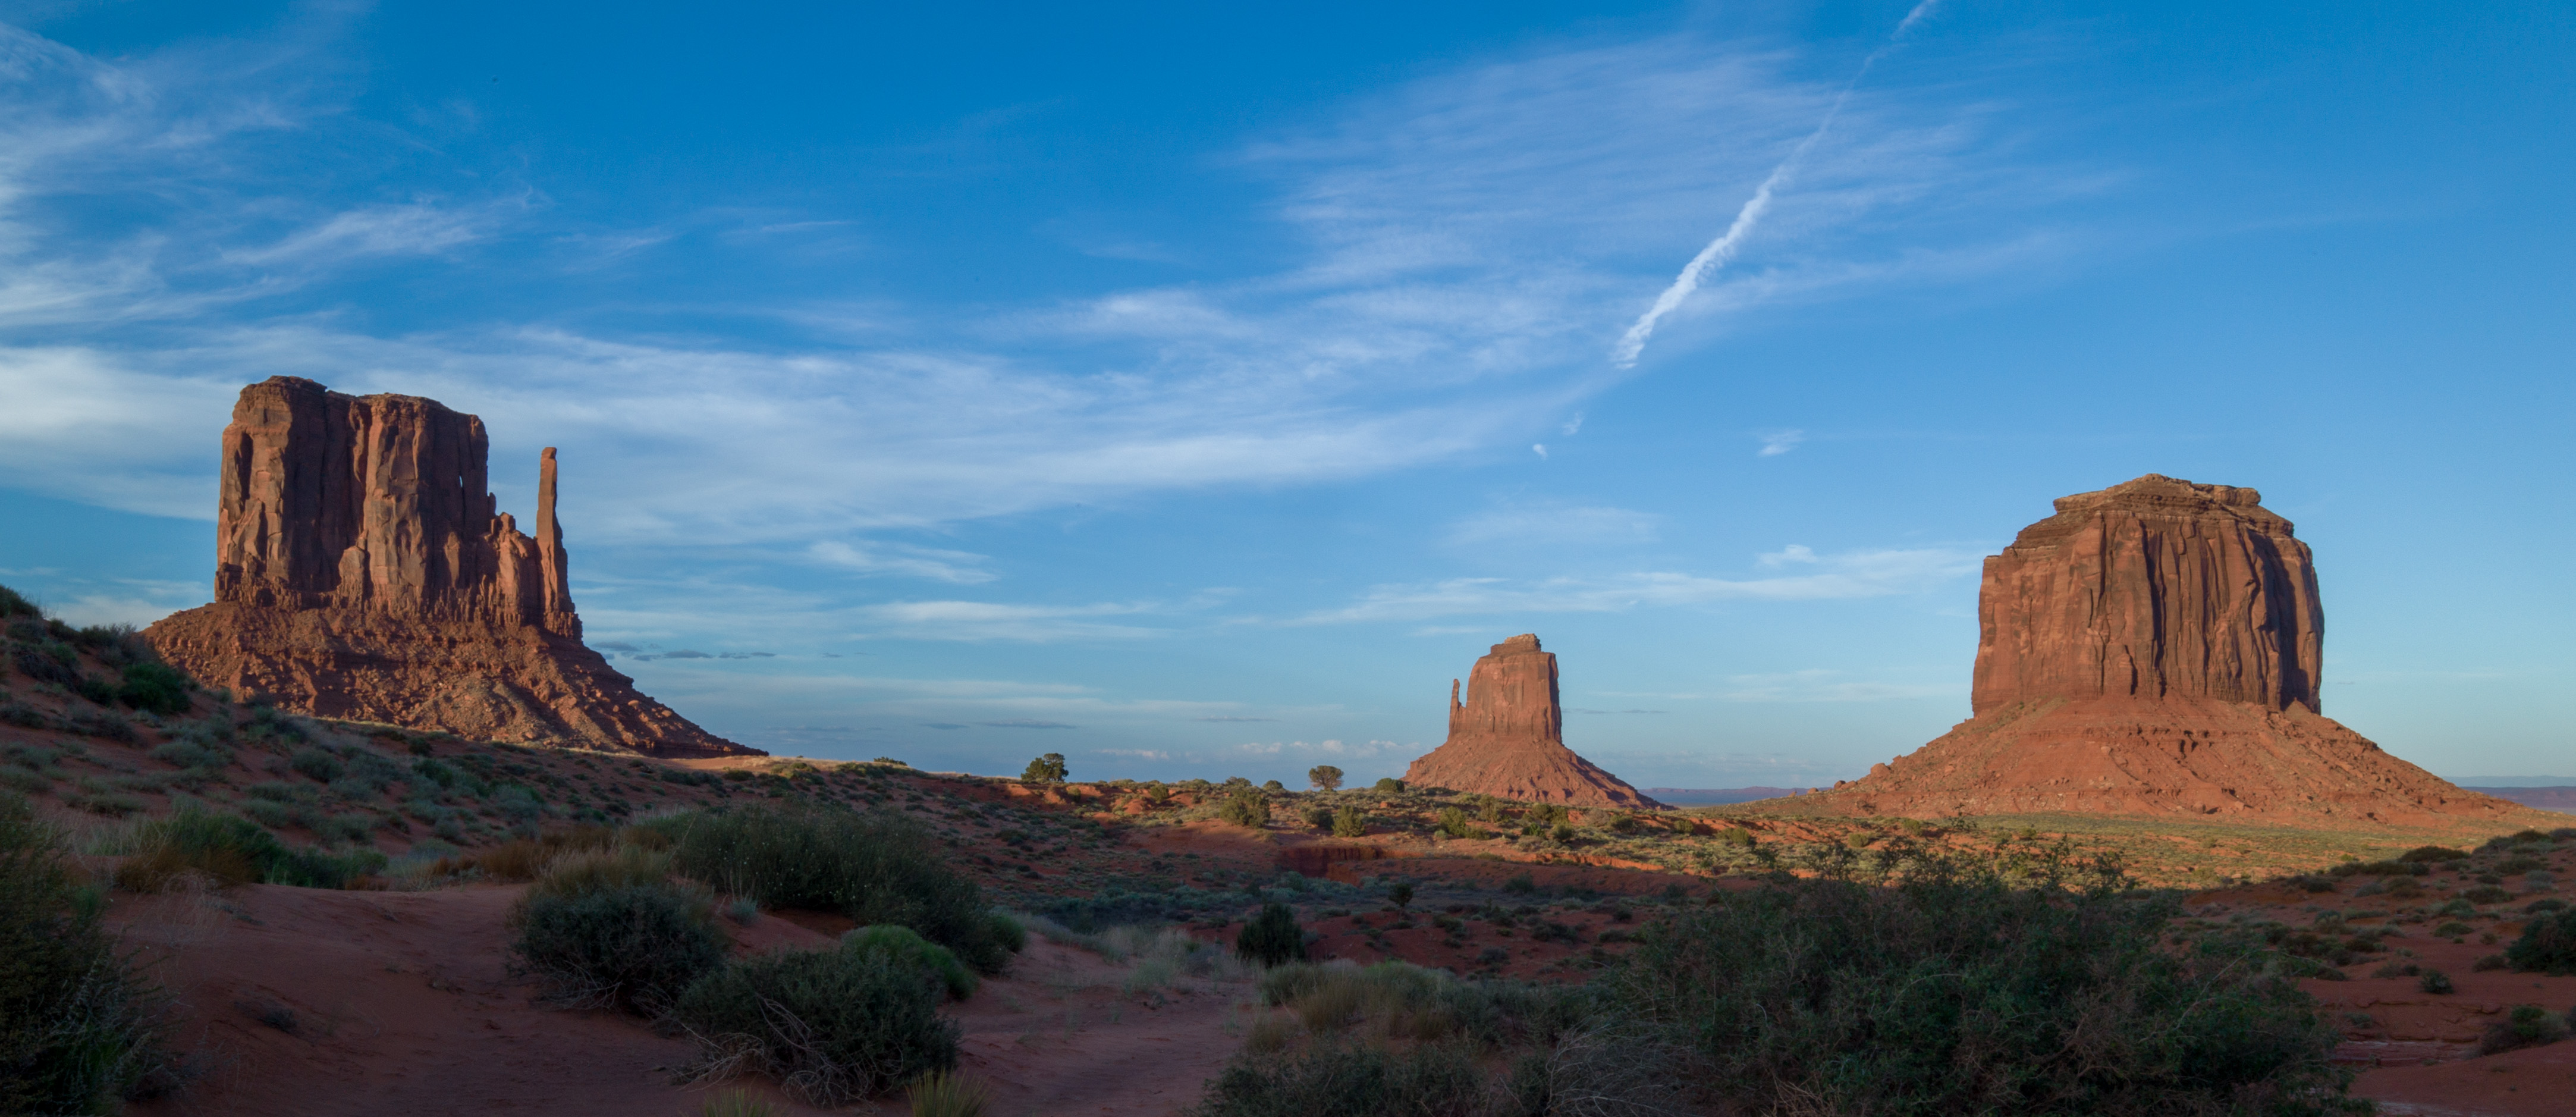 monument valley m9-15